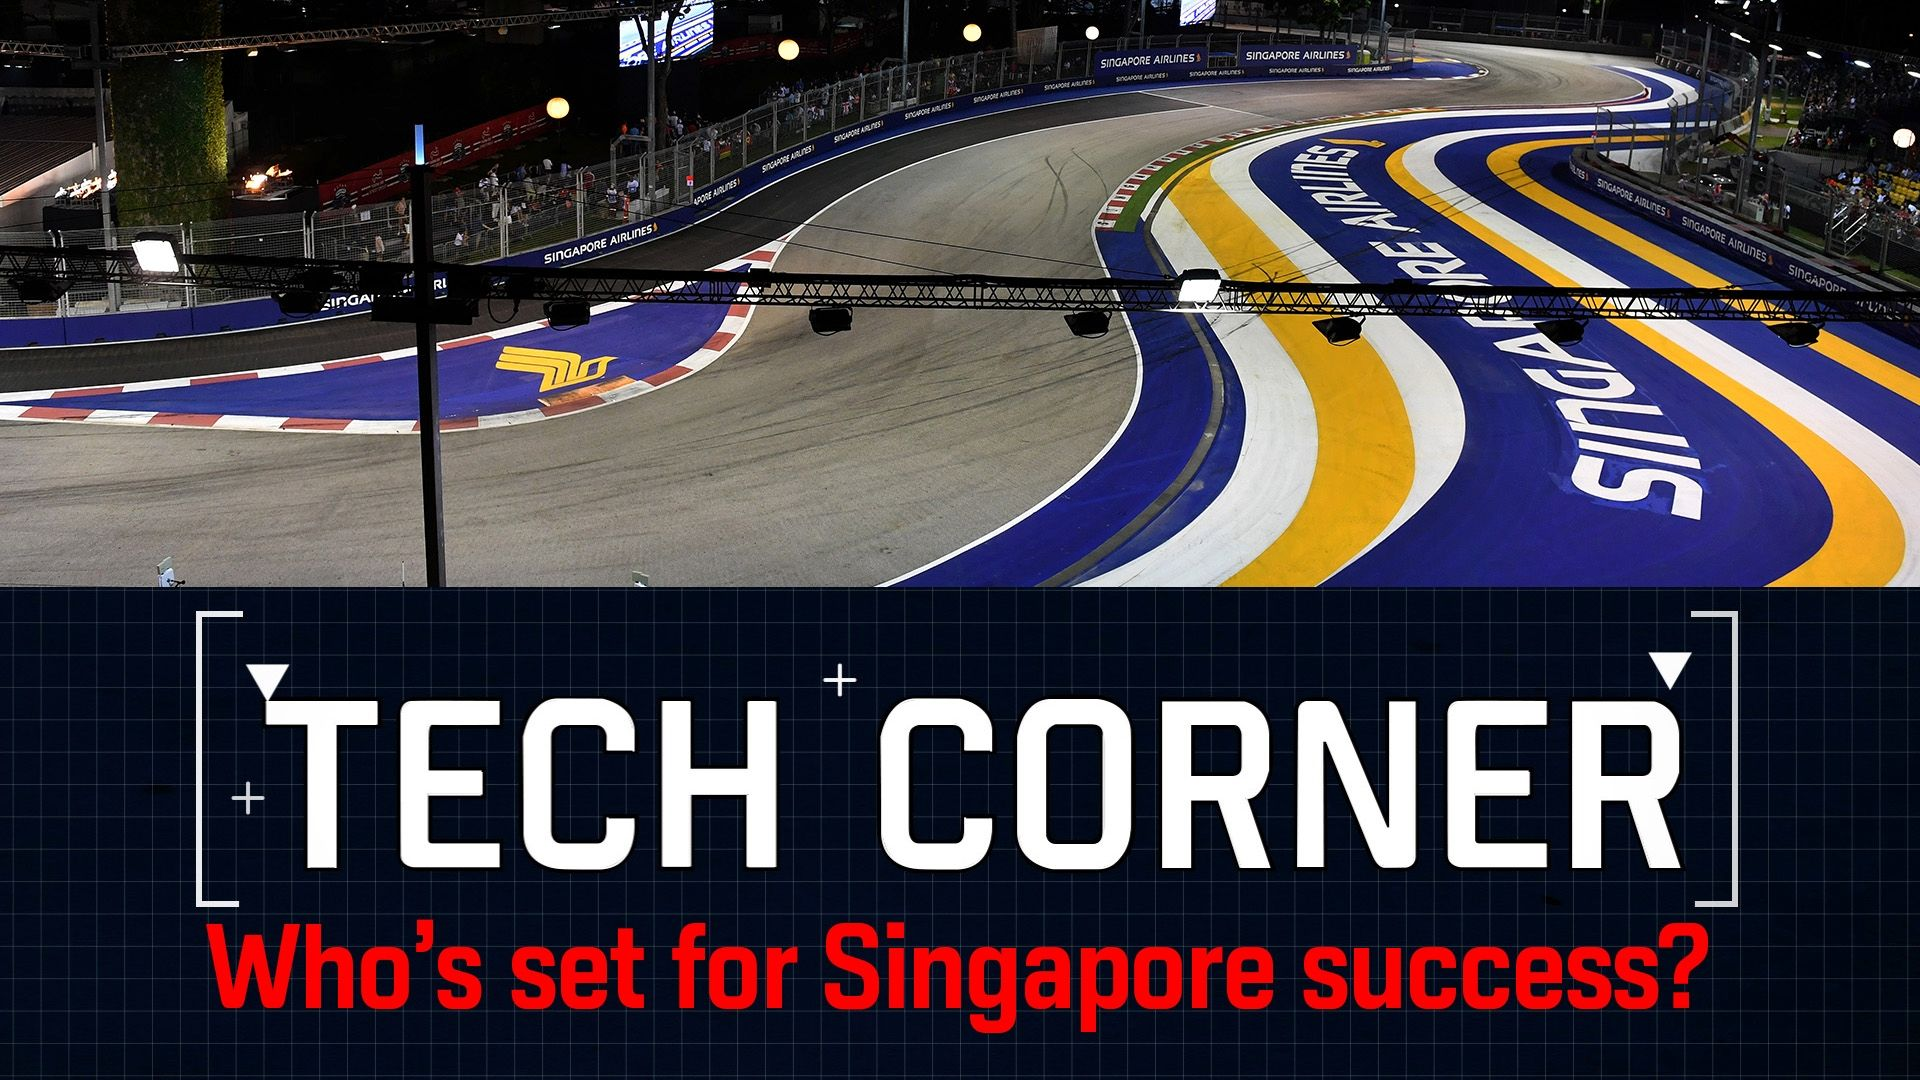 Who said what after qualifying for the Singapore Grand Prix